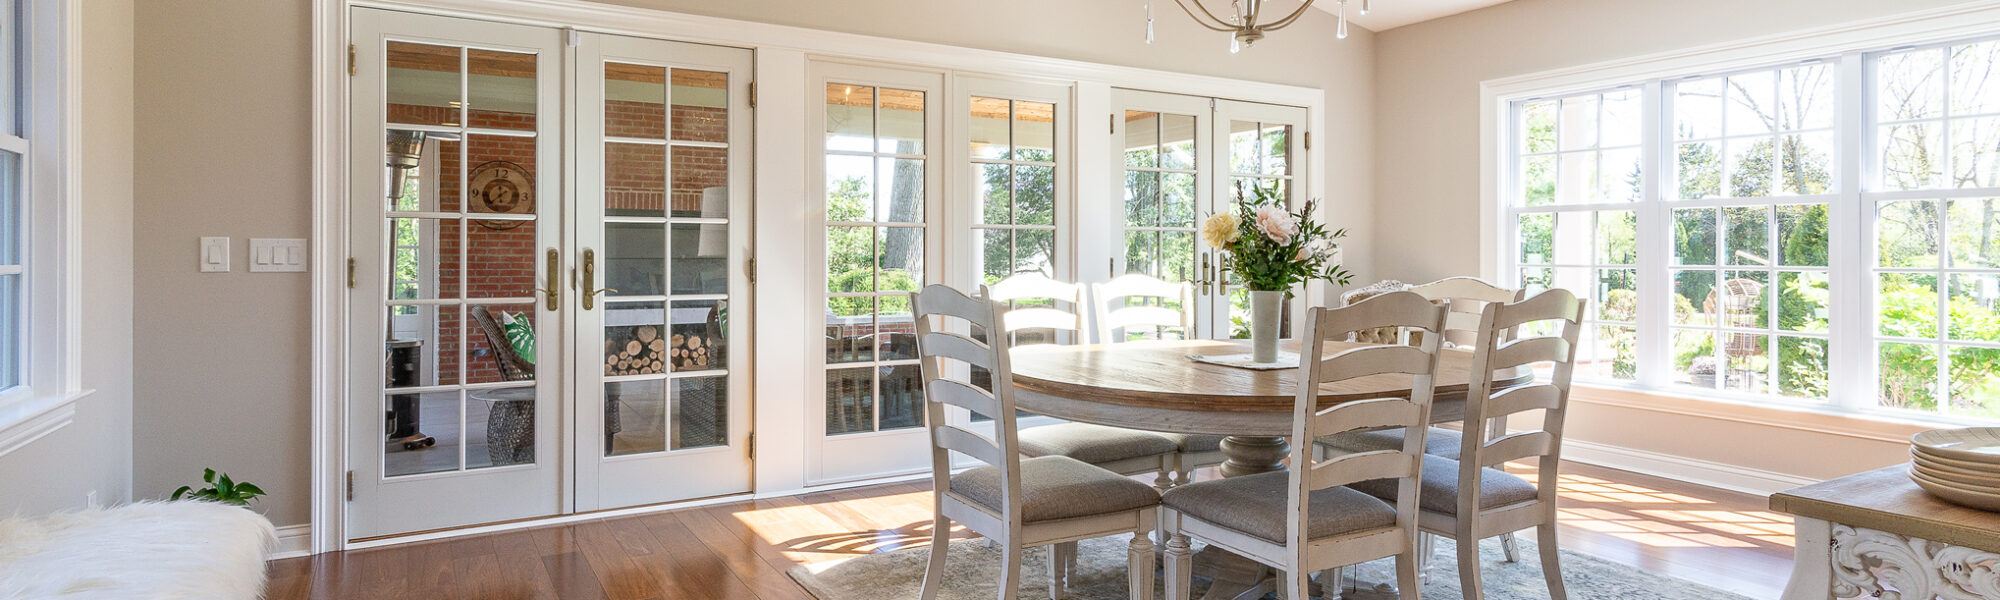 Home Remodeling - Dining